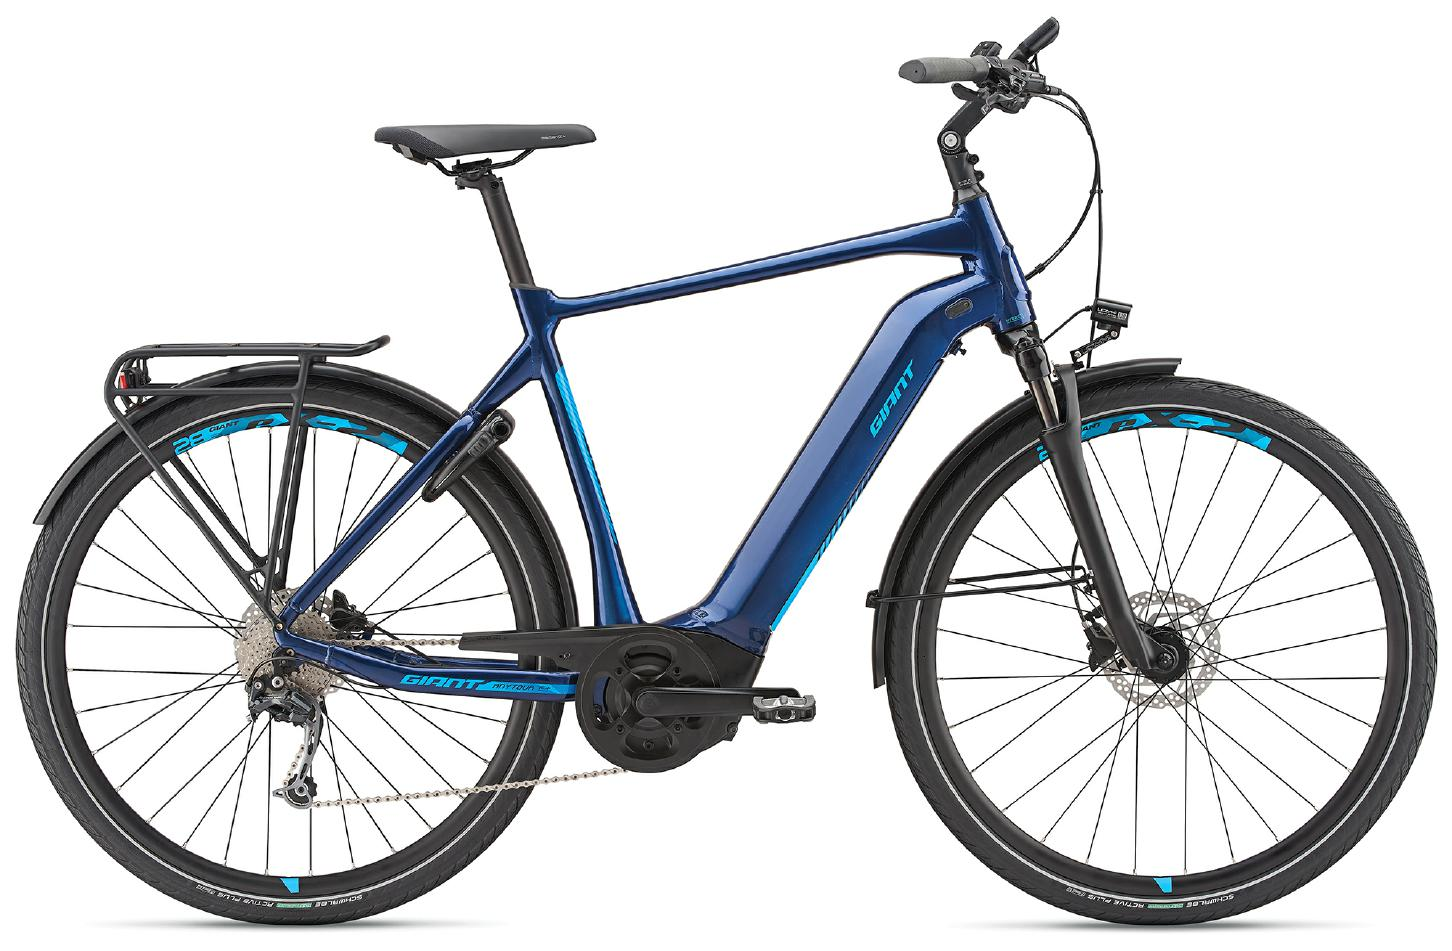 Giant Anytour E+ 2 - GTS - Trekking e-Bike 2019